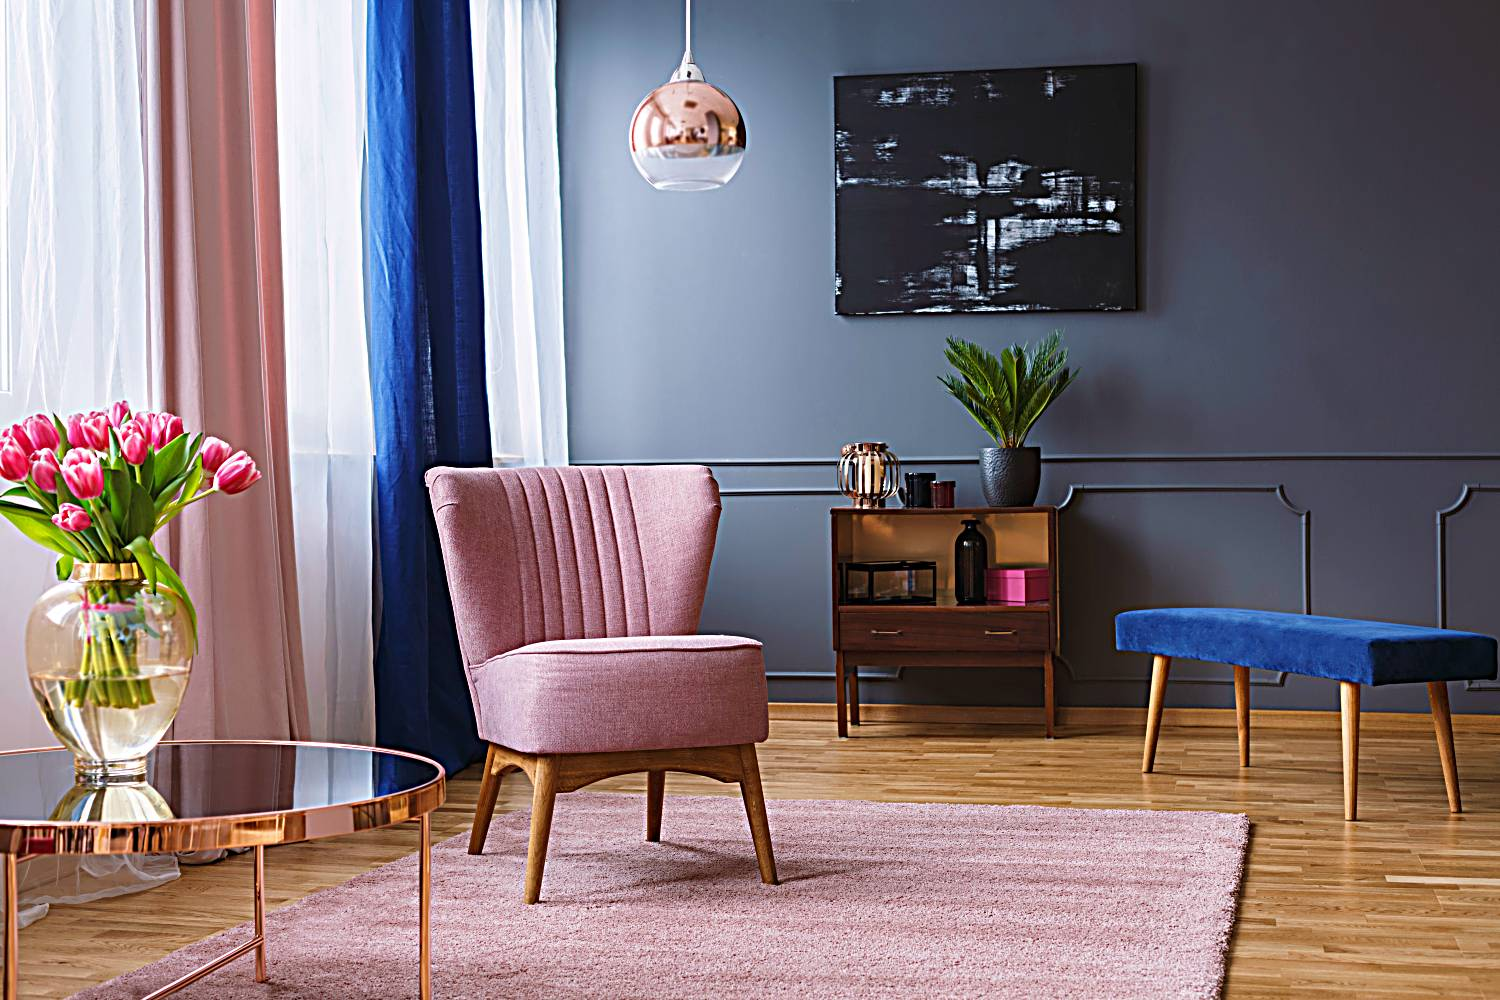 pink armchair standing on a rug and under a lamp in spacious living room interior, next to a table with flowers and in front of a shelf next to a grey wall with dark painting